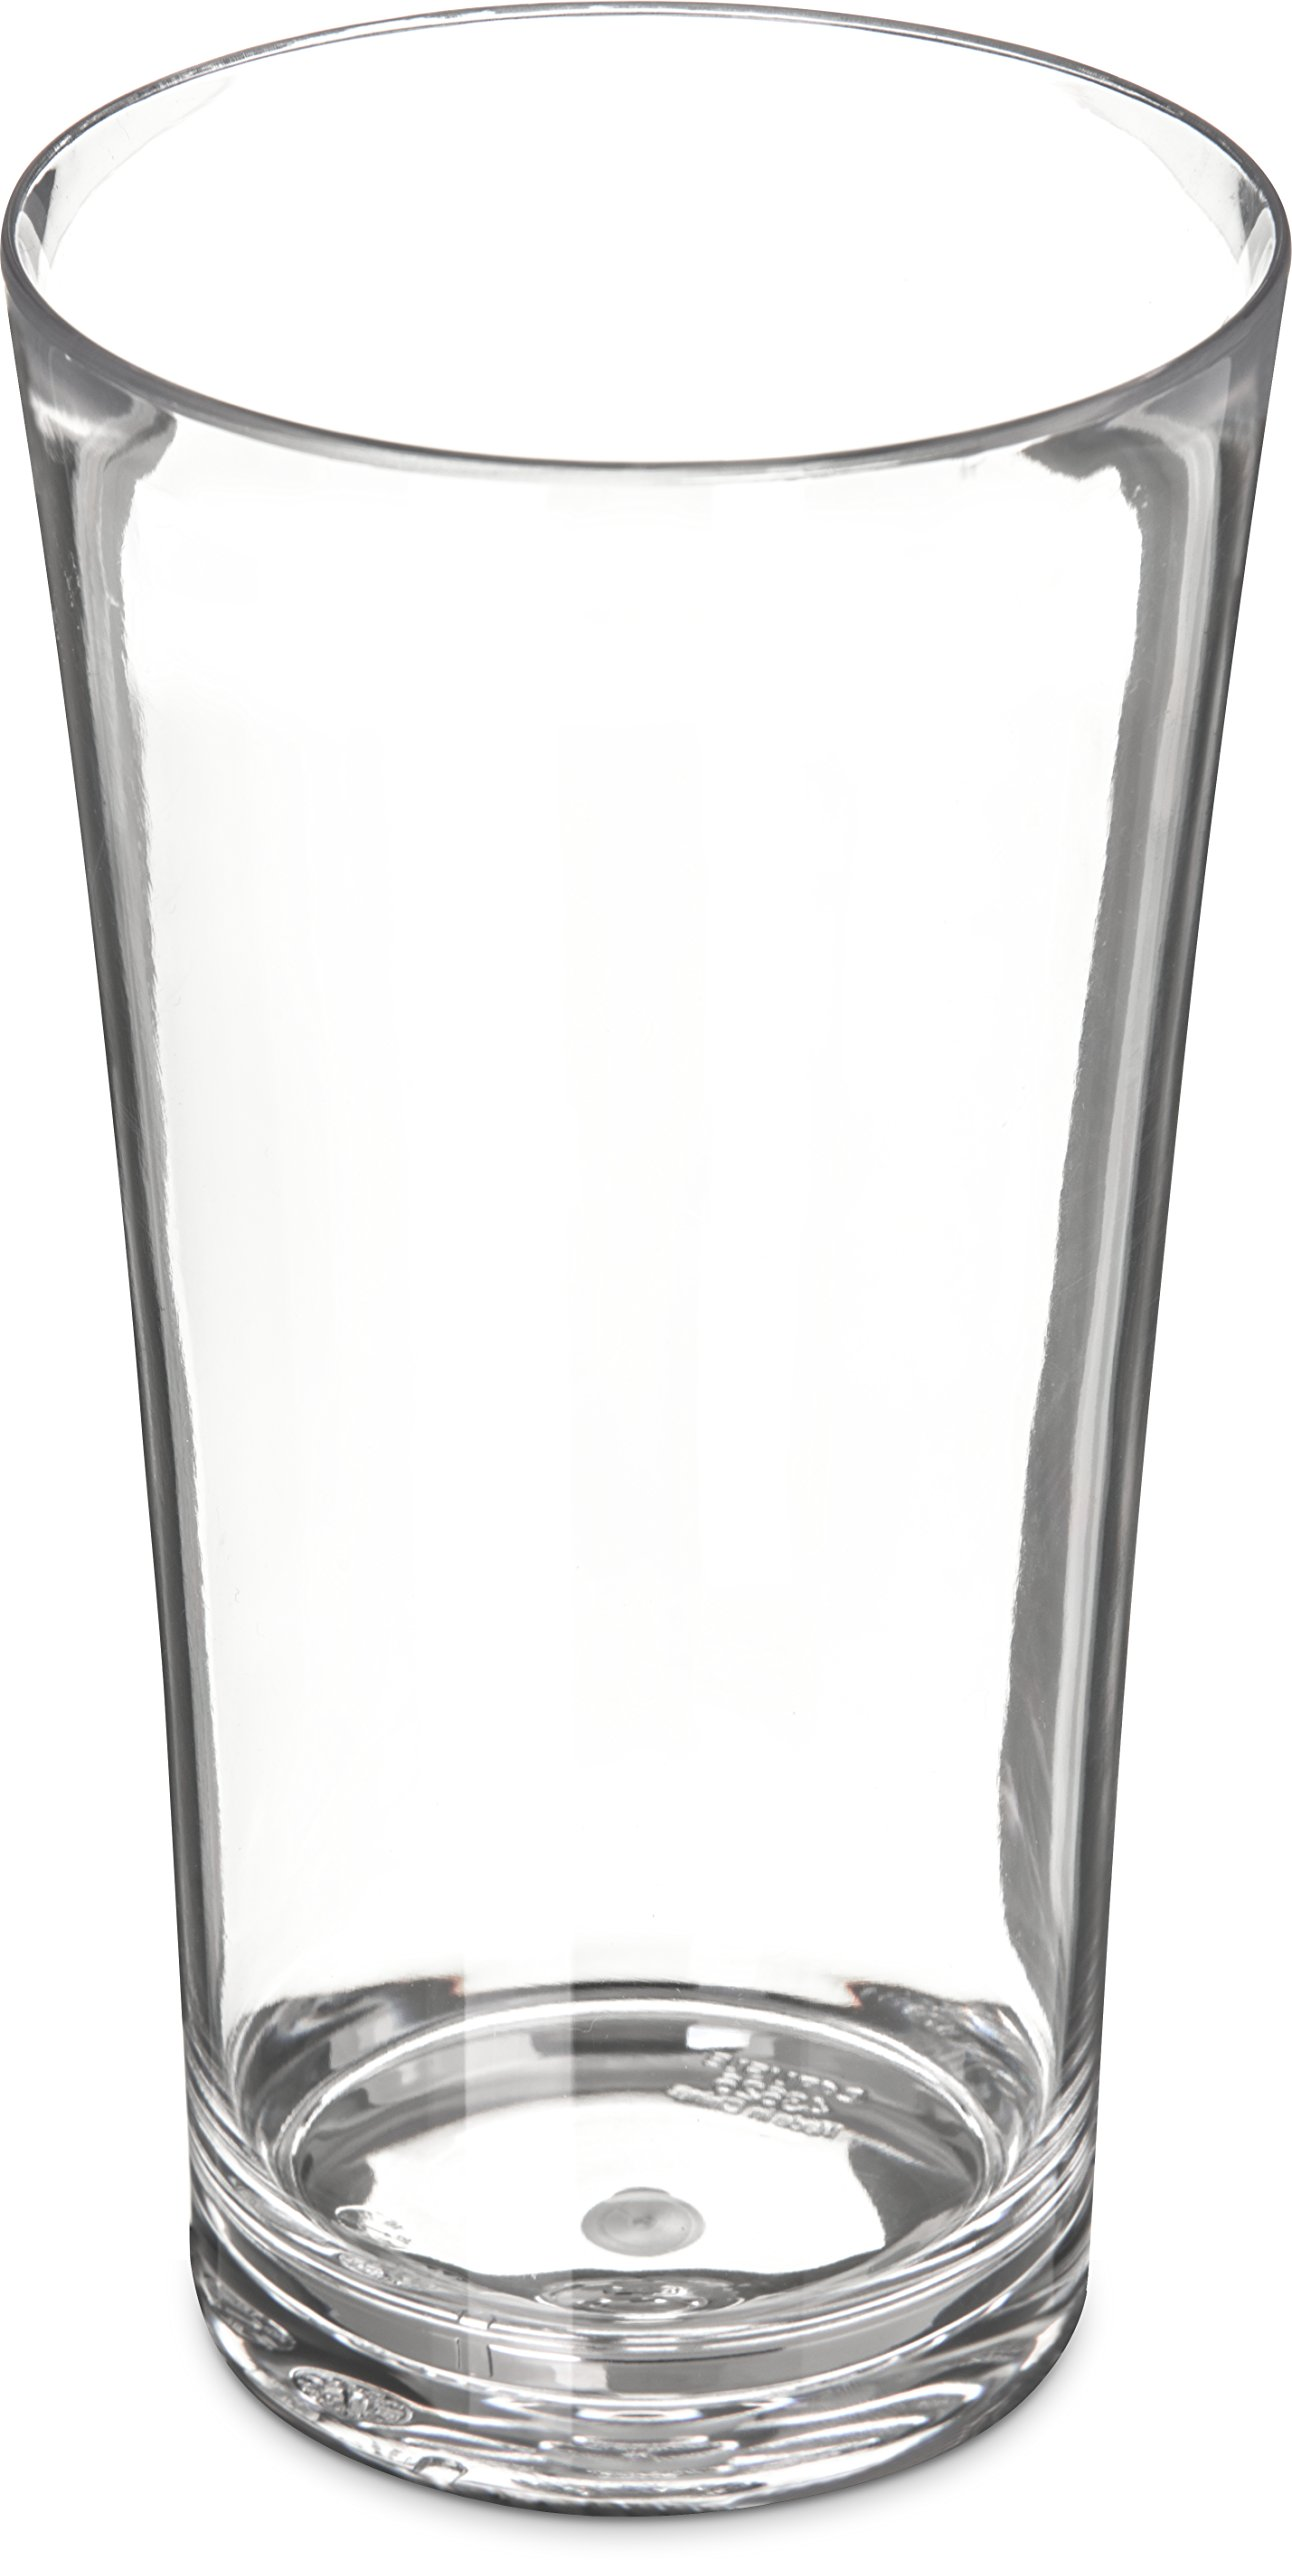 Carlisle 4362607 Liberty Polycarbonate Hi-Ball, 22oz Capacity, Clear (Case of 24)